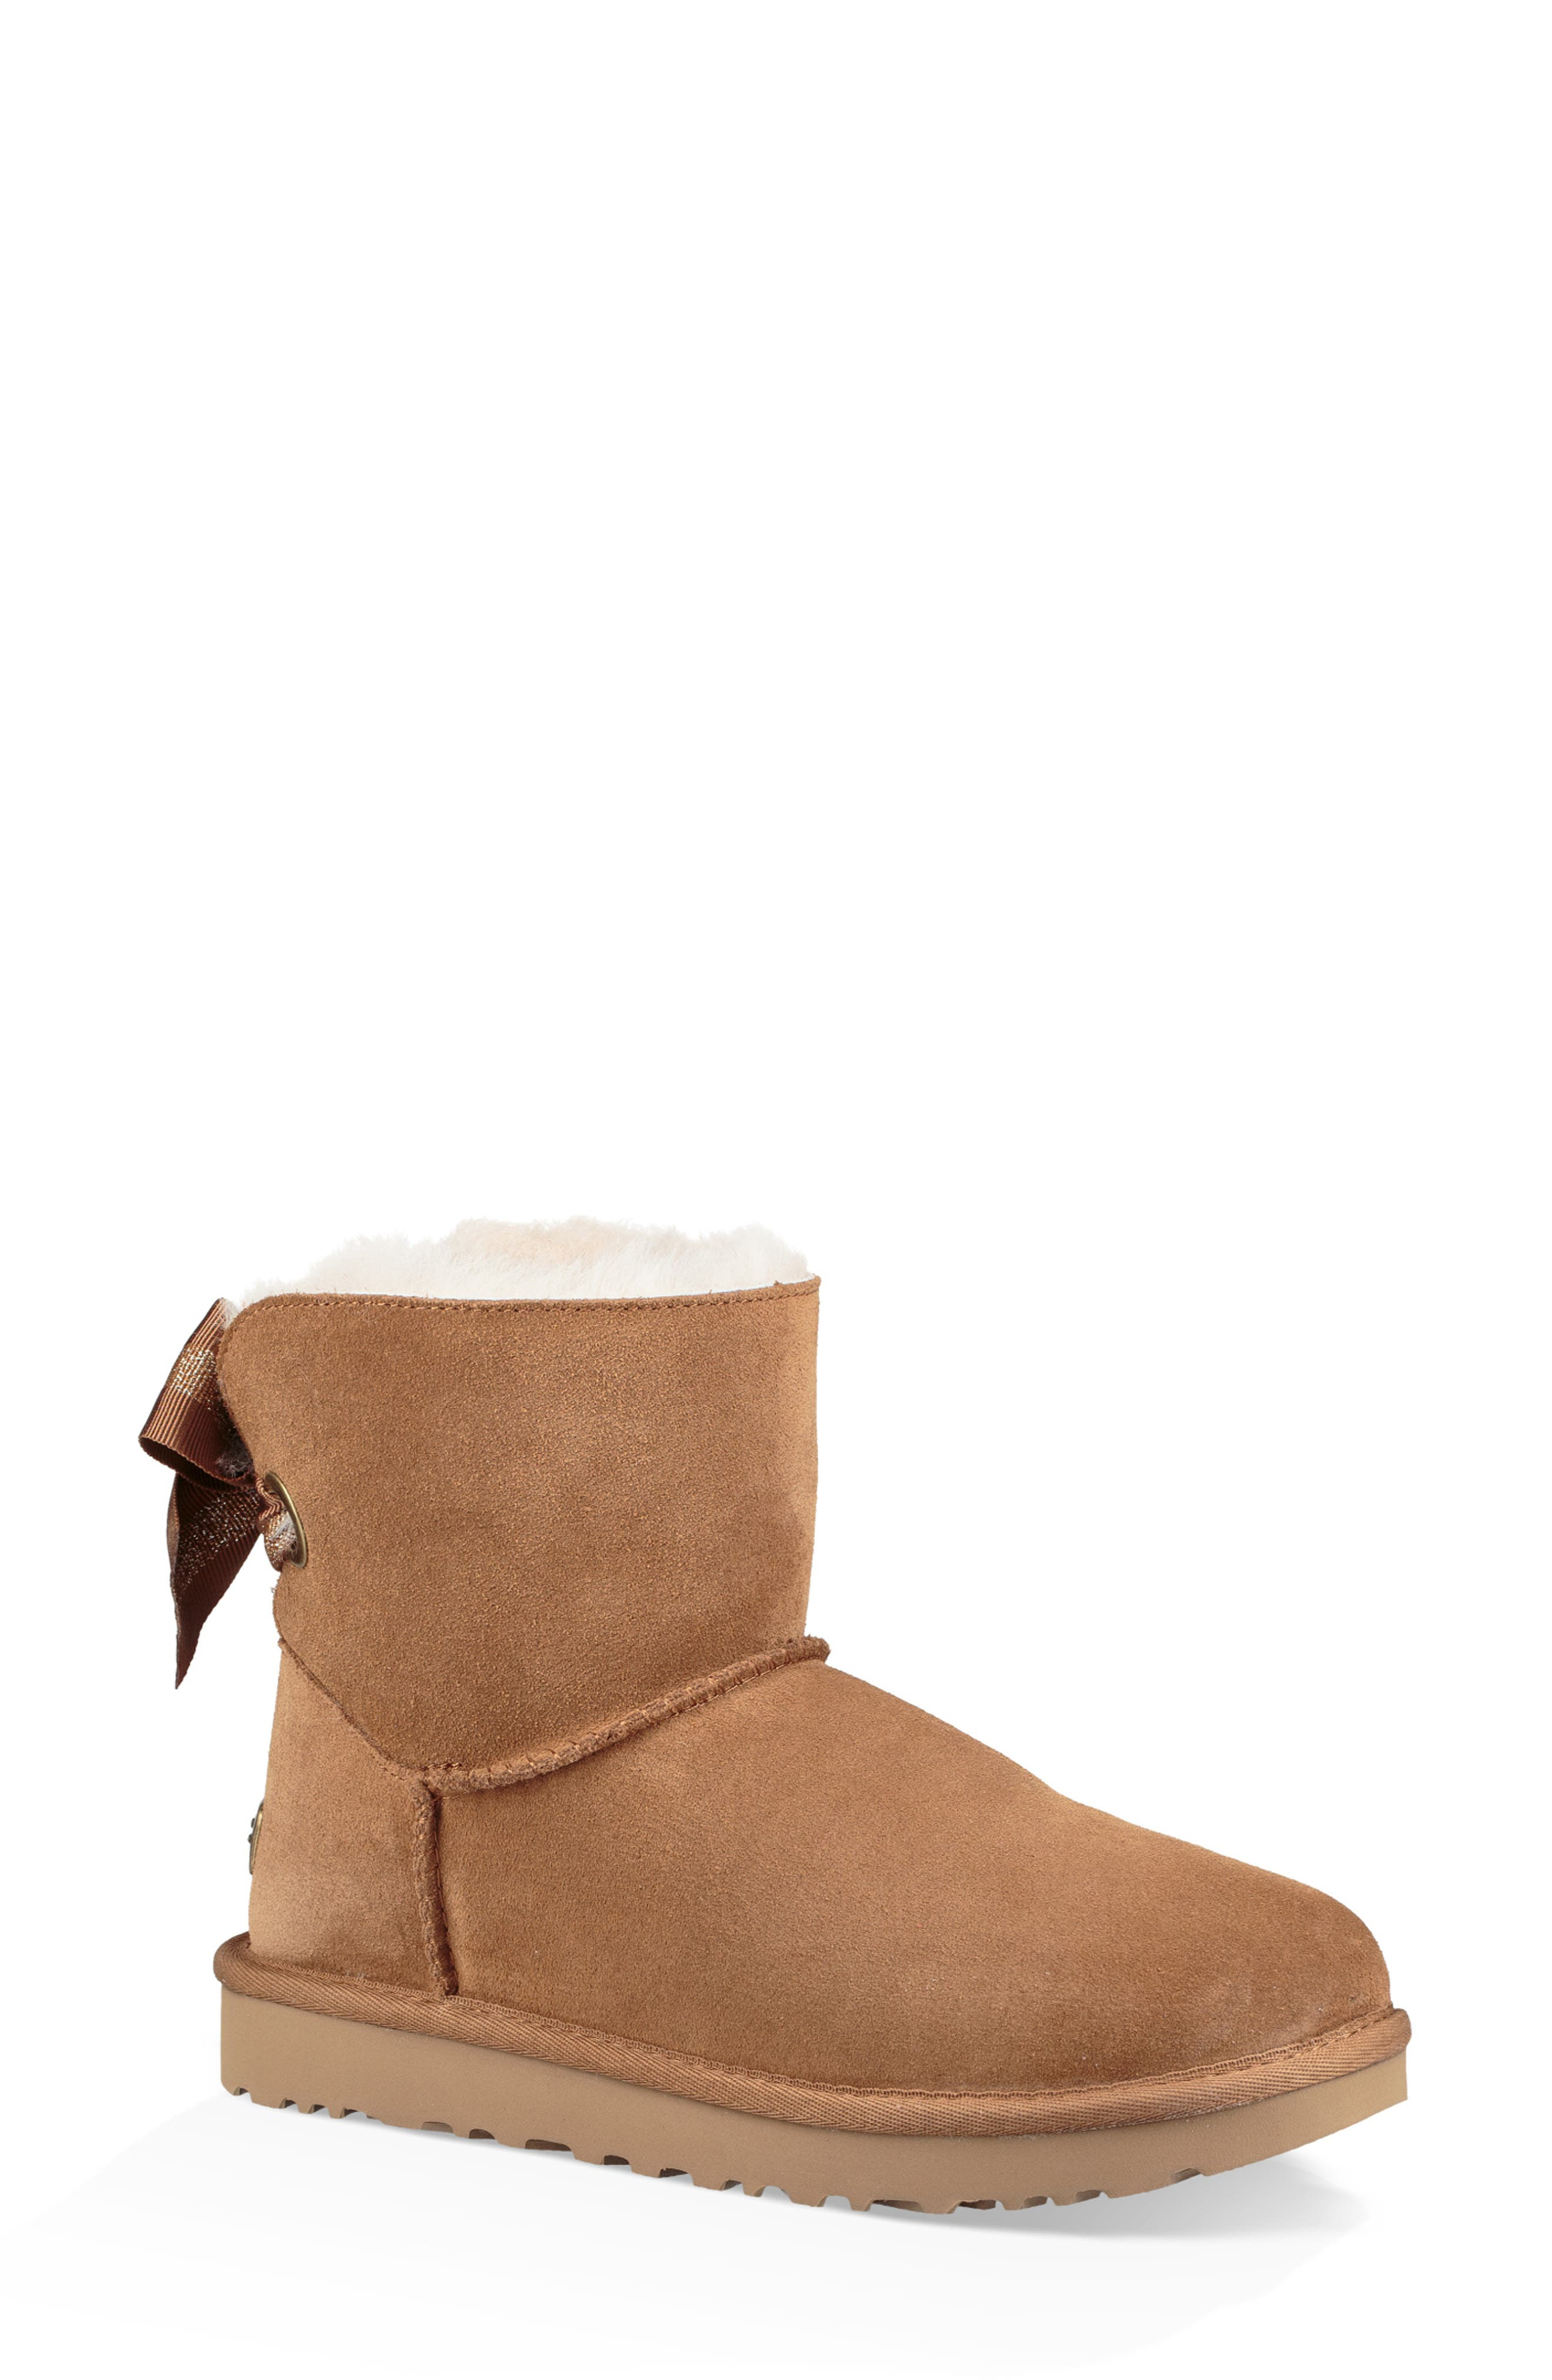 Customizable Bailey Bow Mini Genuine Shearling Bootie,                         Main,                         color, CHESTNUT SUEDE